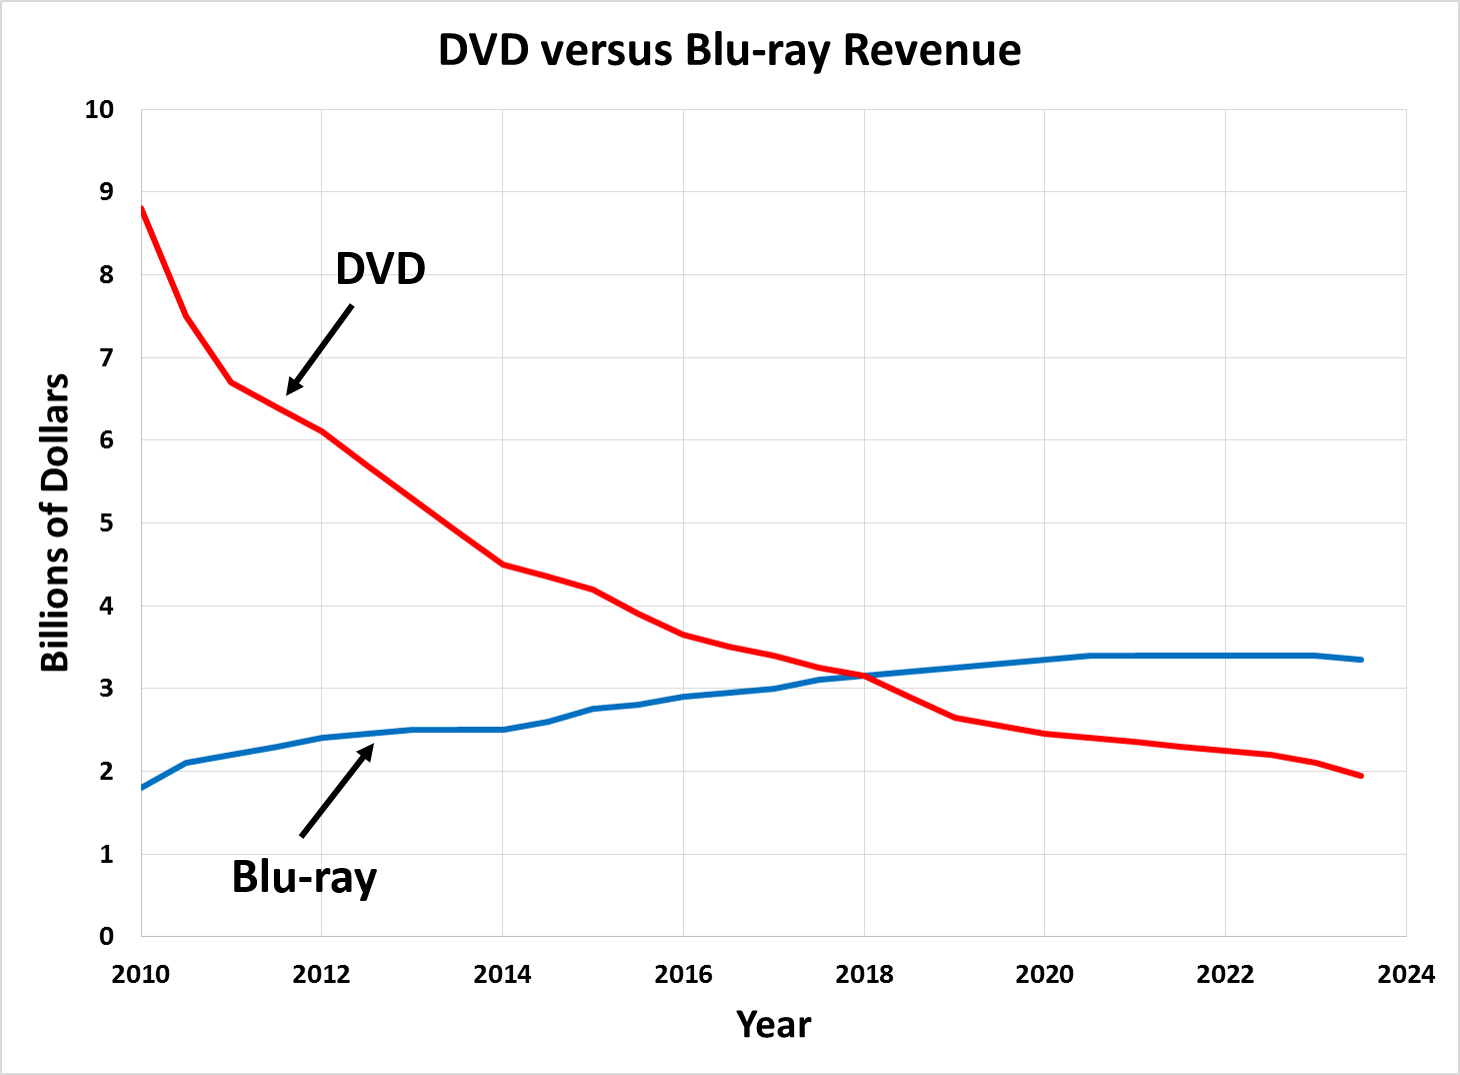 DVD versus Blu-ray United States Revenue from 2010 to 2015 in billions of U.S. dollars and predictions for future revenues.